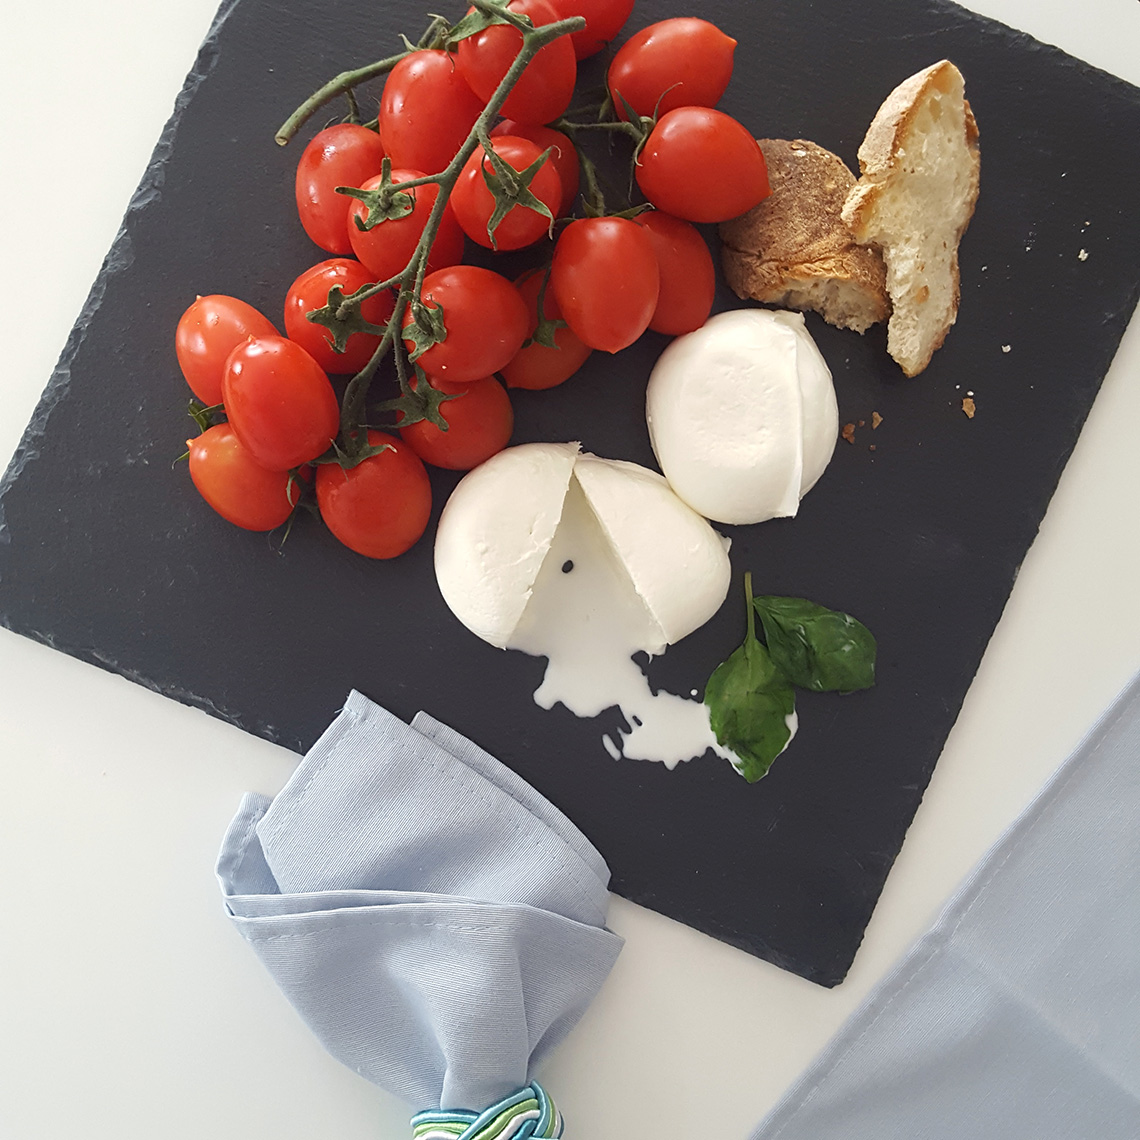 la_tavola_in_estate_dressing_and_toppings_9